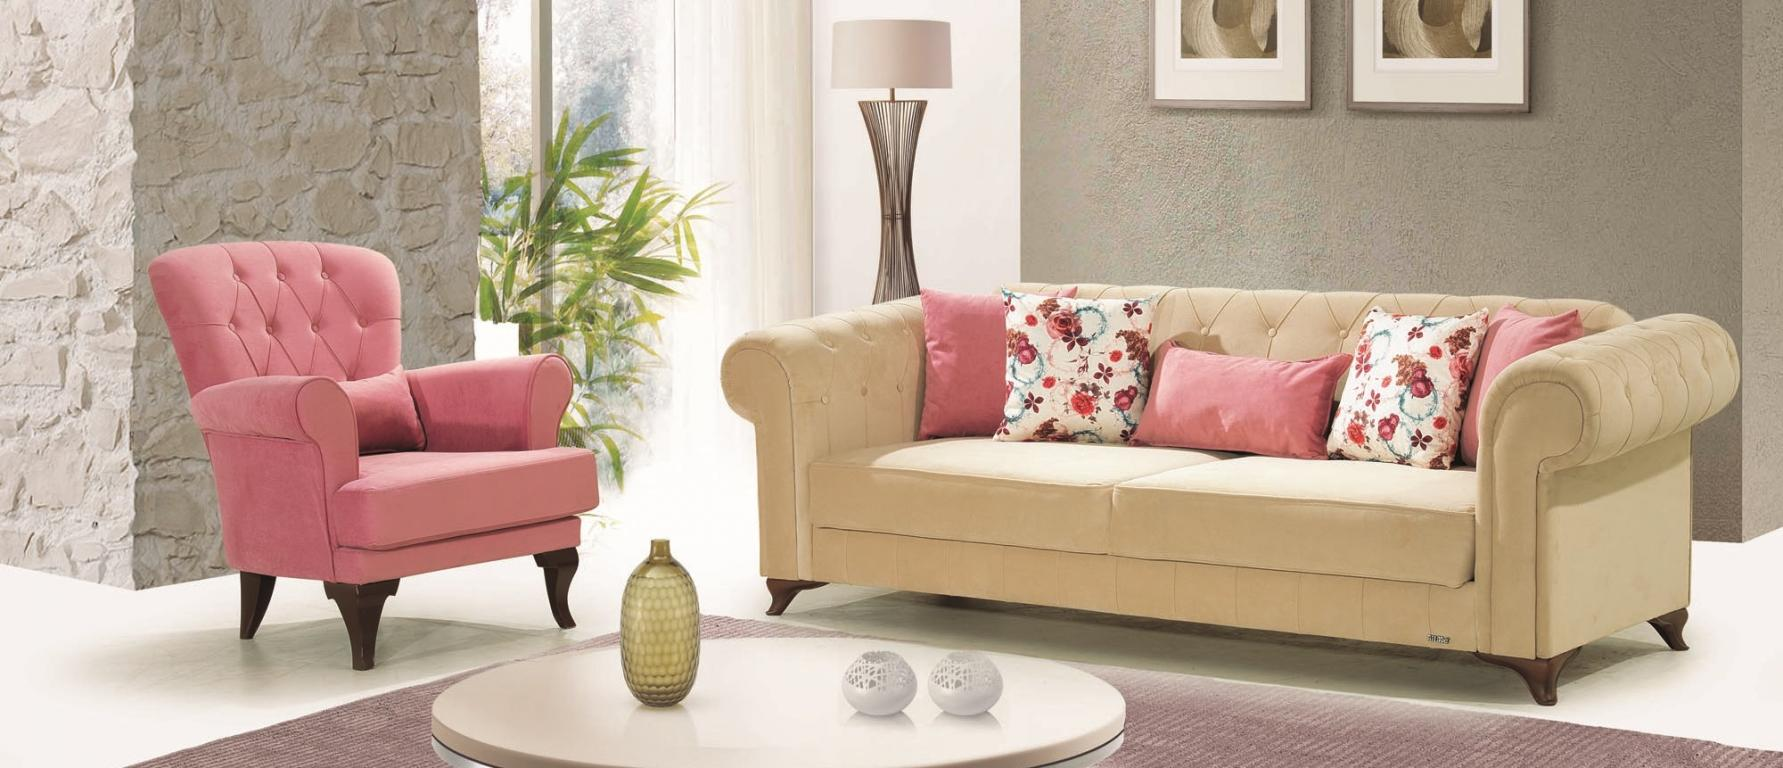 pink sofa set 100 images homcom kindersofa pink f r. Black Bedroom Furniture Sets. Home Design Ideas